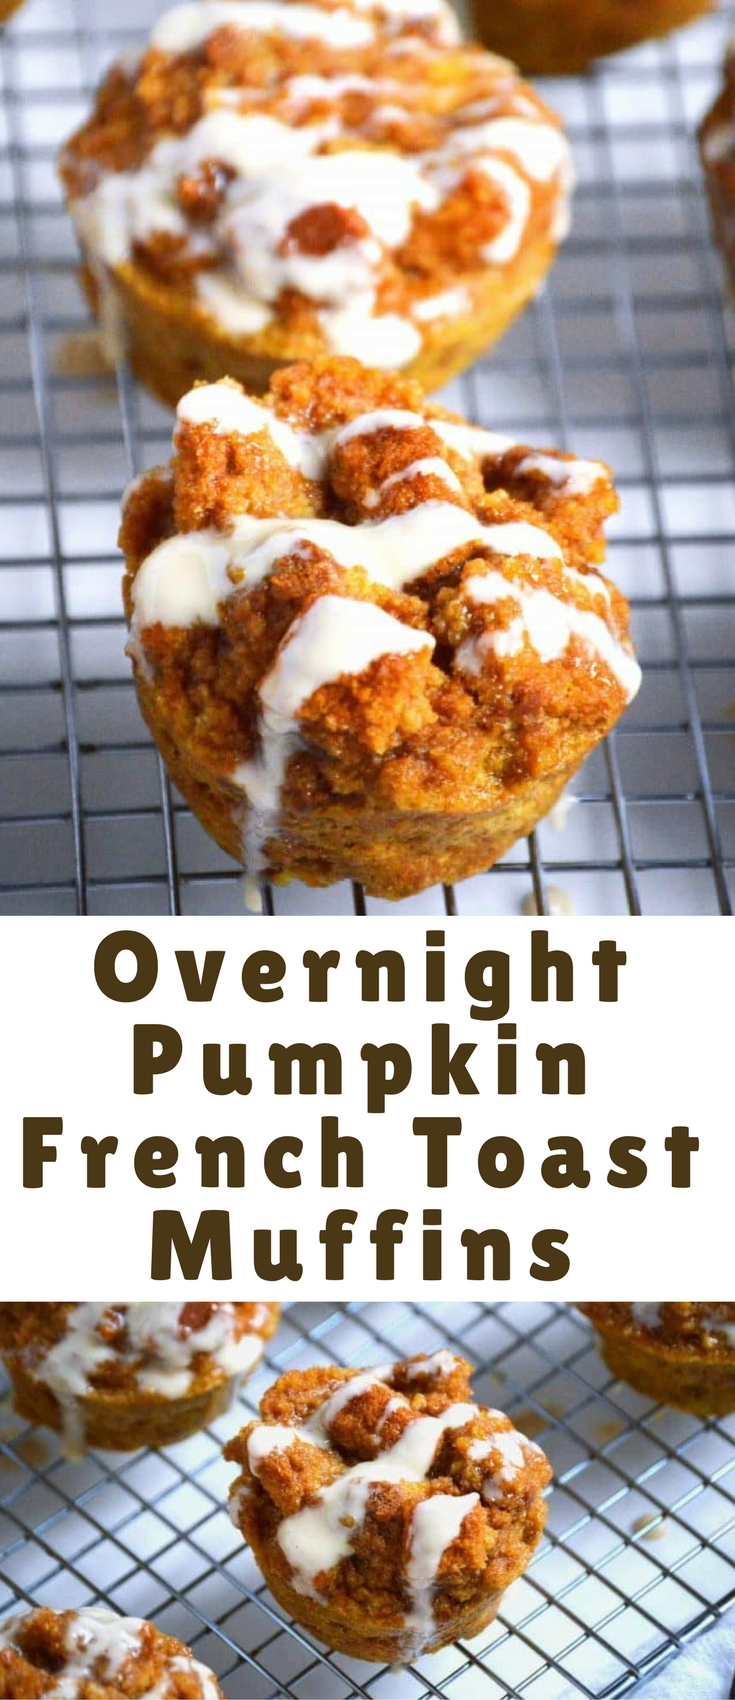 Pumpkin French Toast Muffins with a maple syrup glaze are an easy, no-flipping required version of french toast. Make the batch up at night, bake in the morning and you have a hot and tasty fall breakfast!